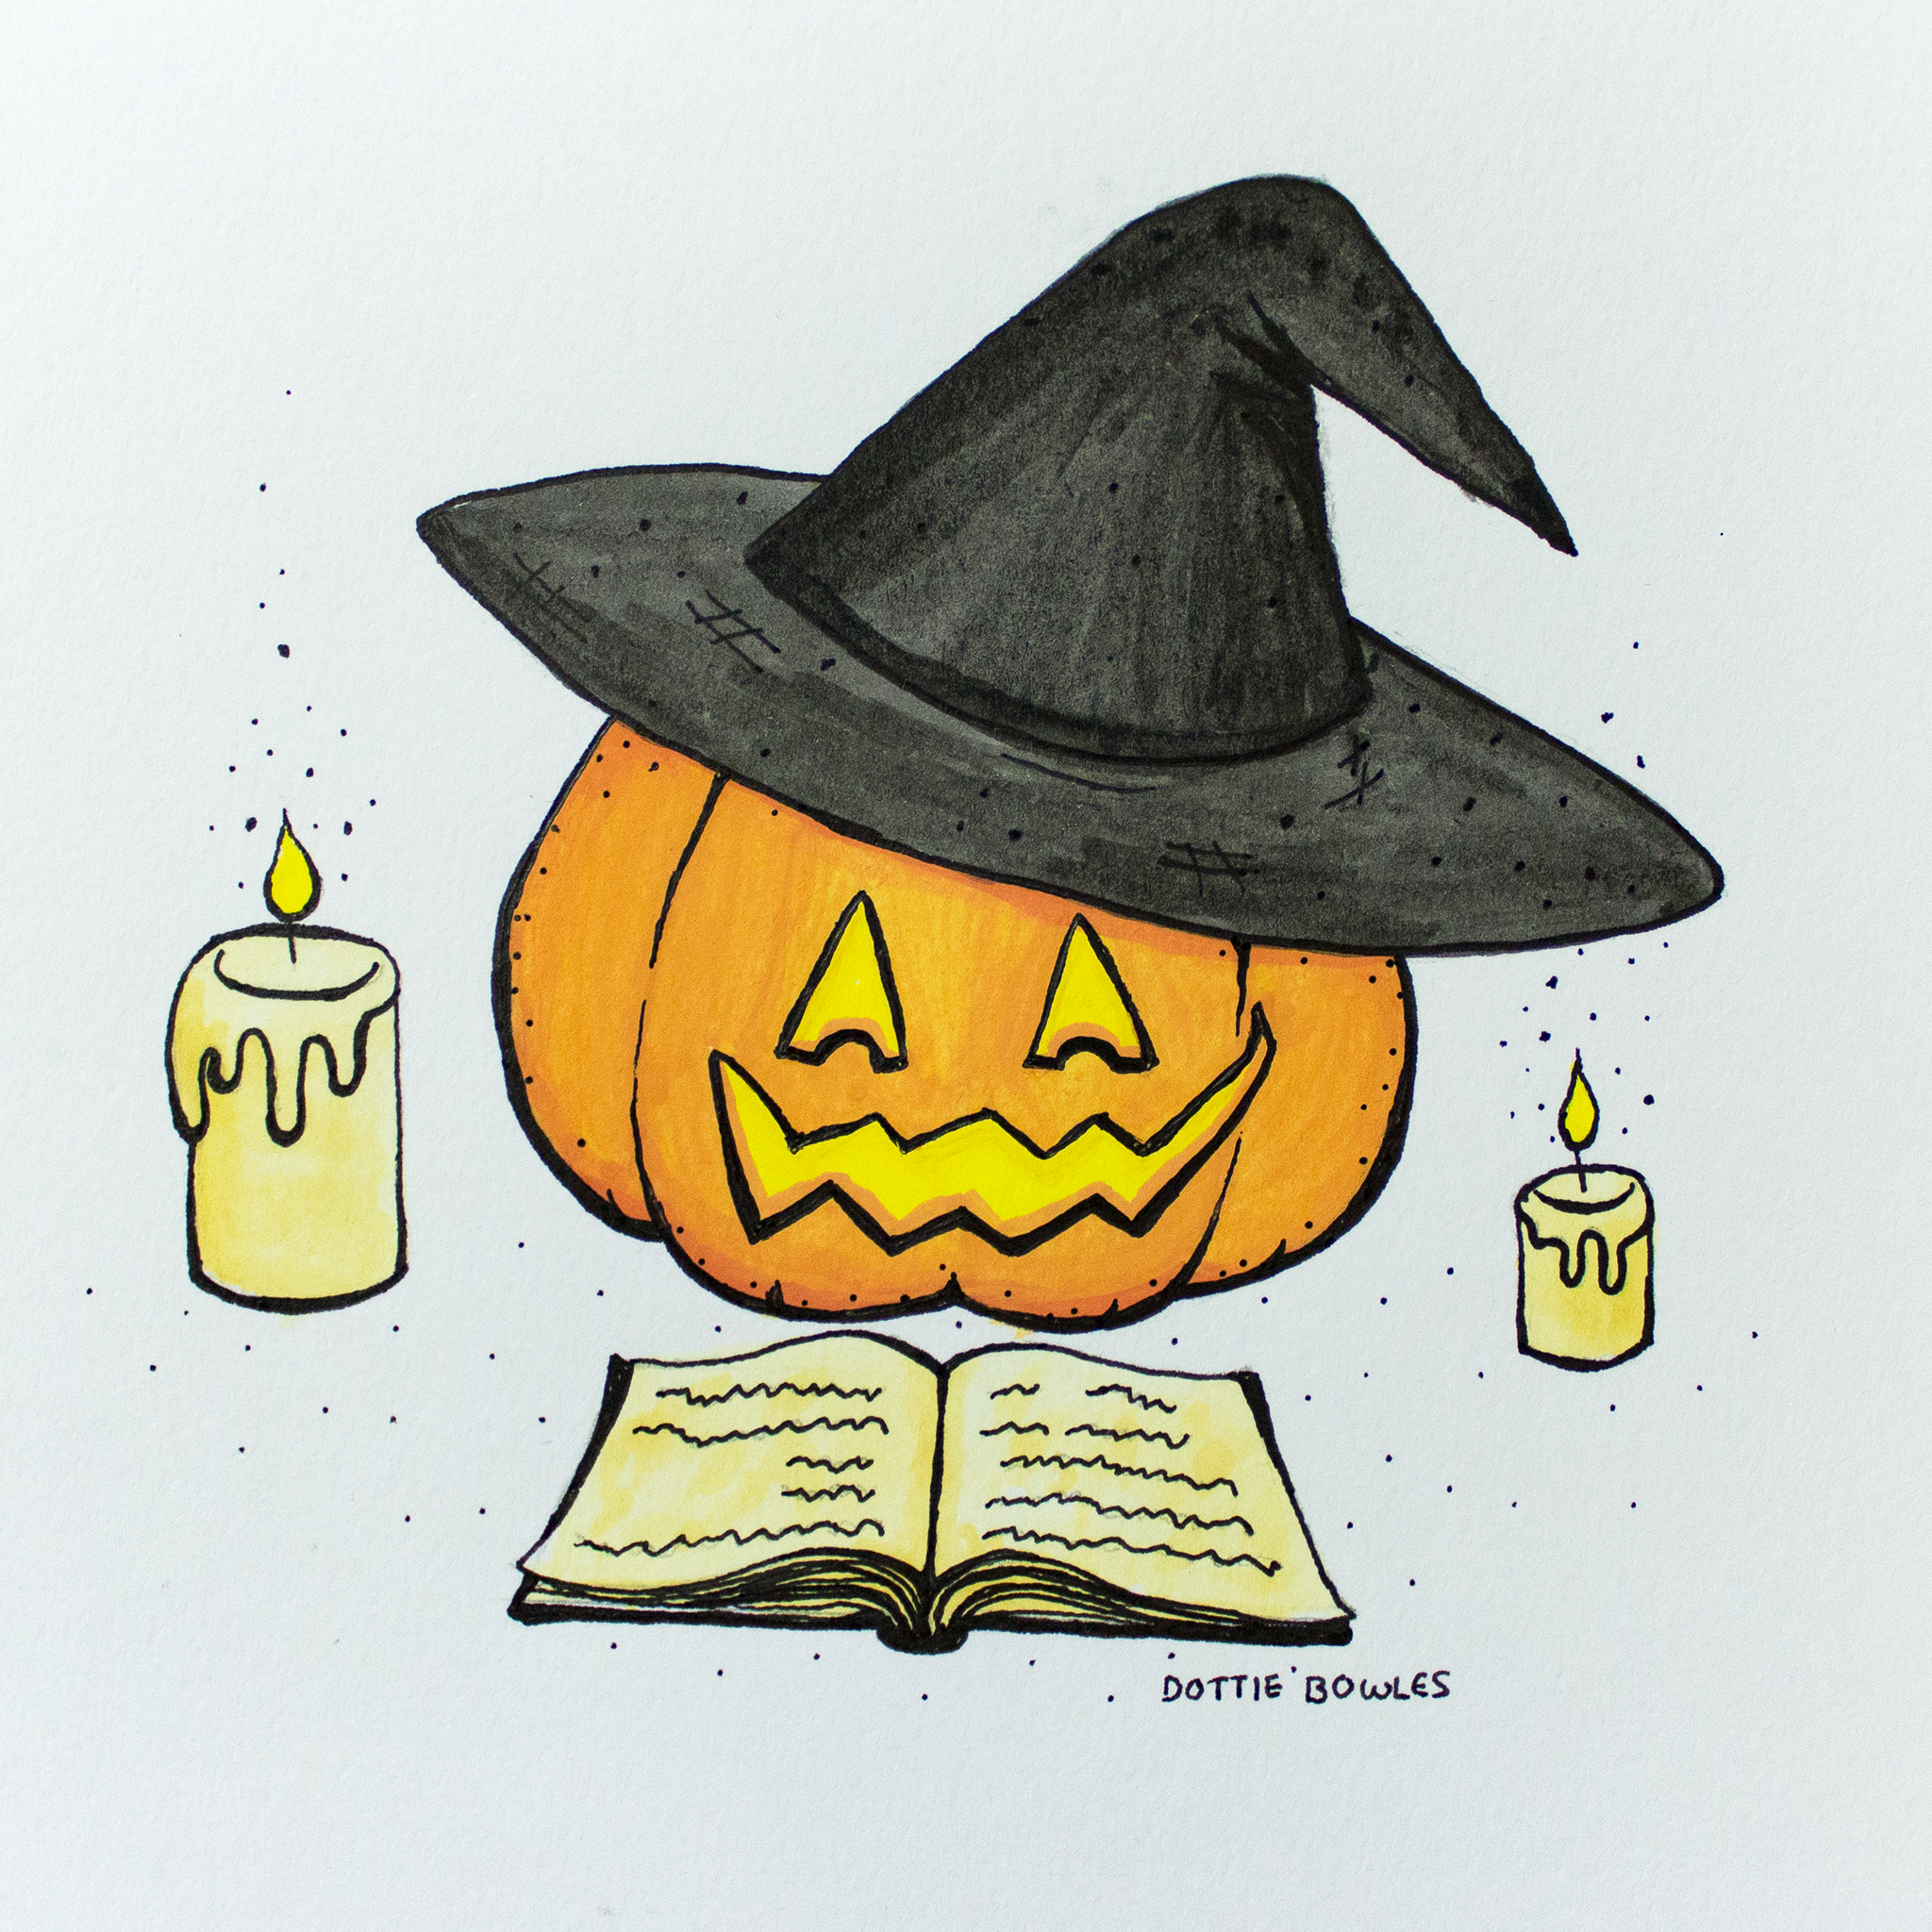 Inktober 2018 Day 4 Spell by Dottie Bowles